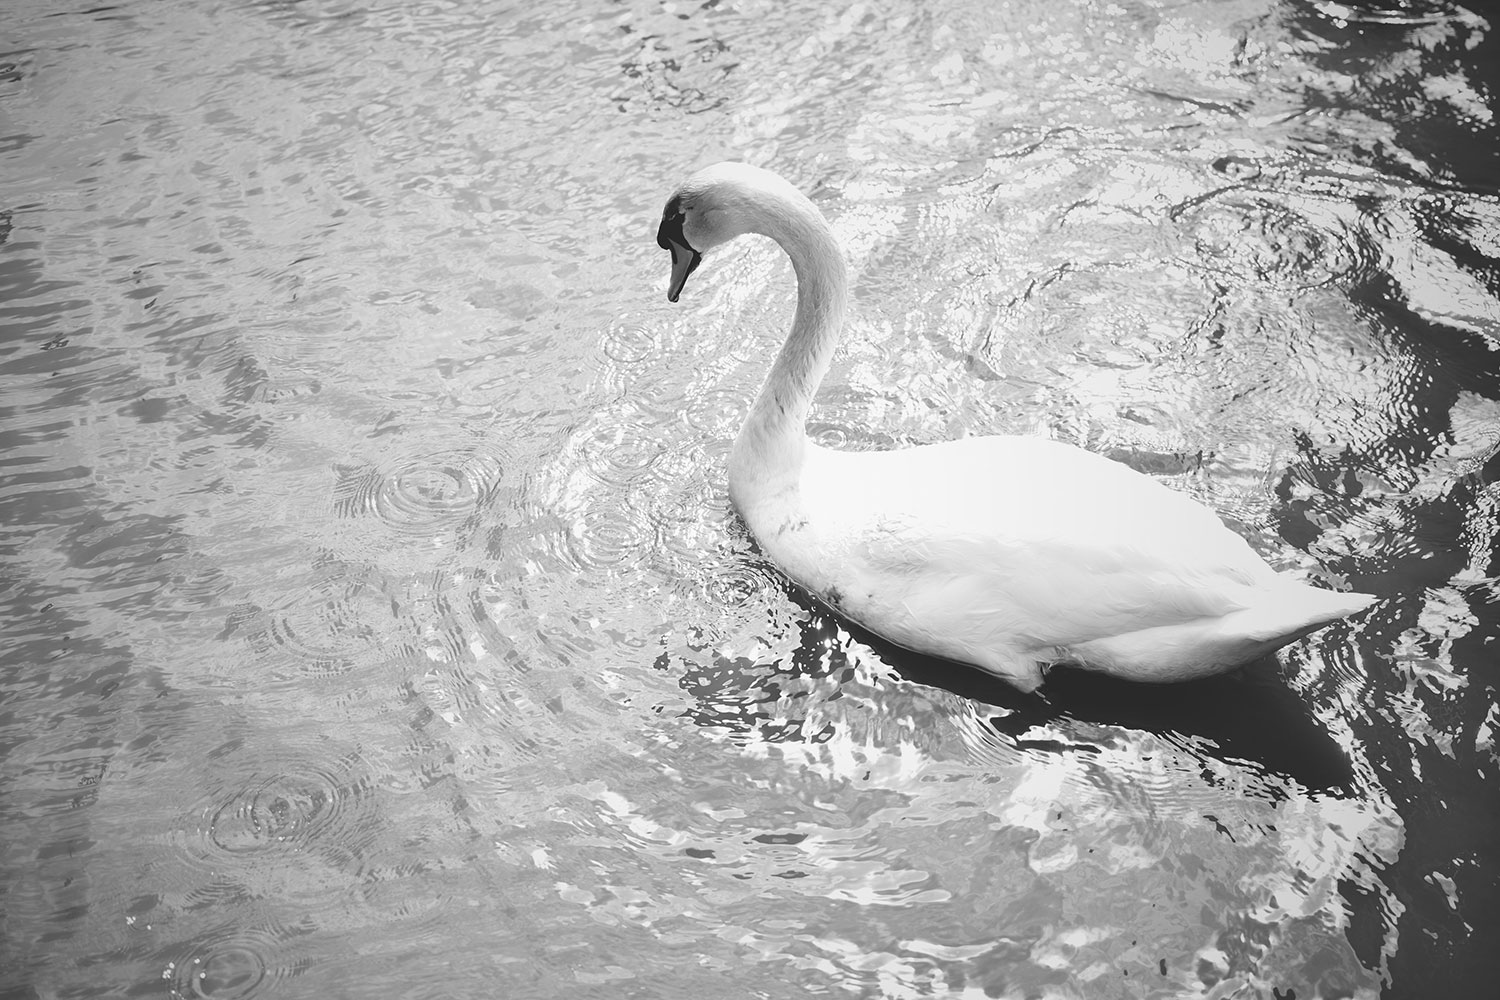 Our Day Out at the Slimbridge Wetland Centre, Gloucestershire - Swan swimming on the lake